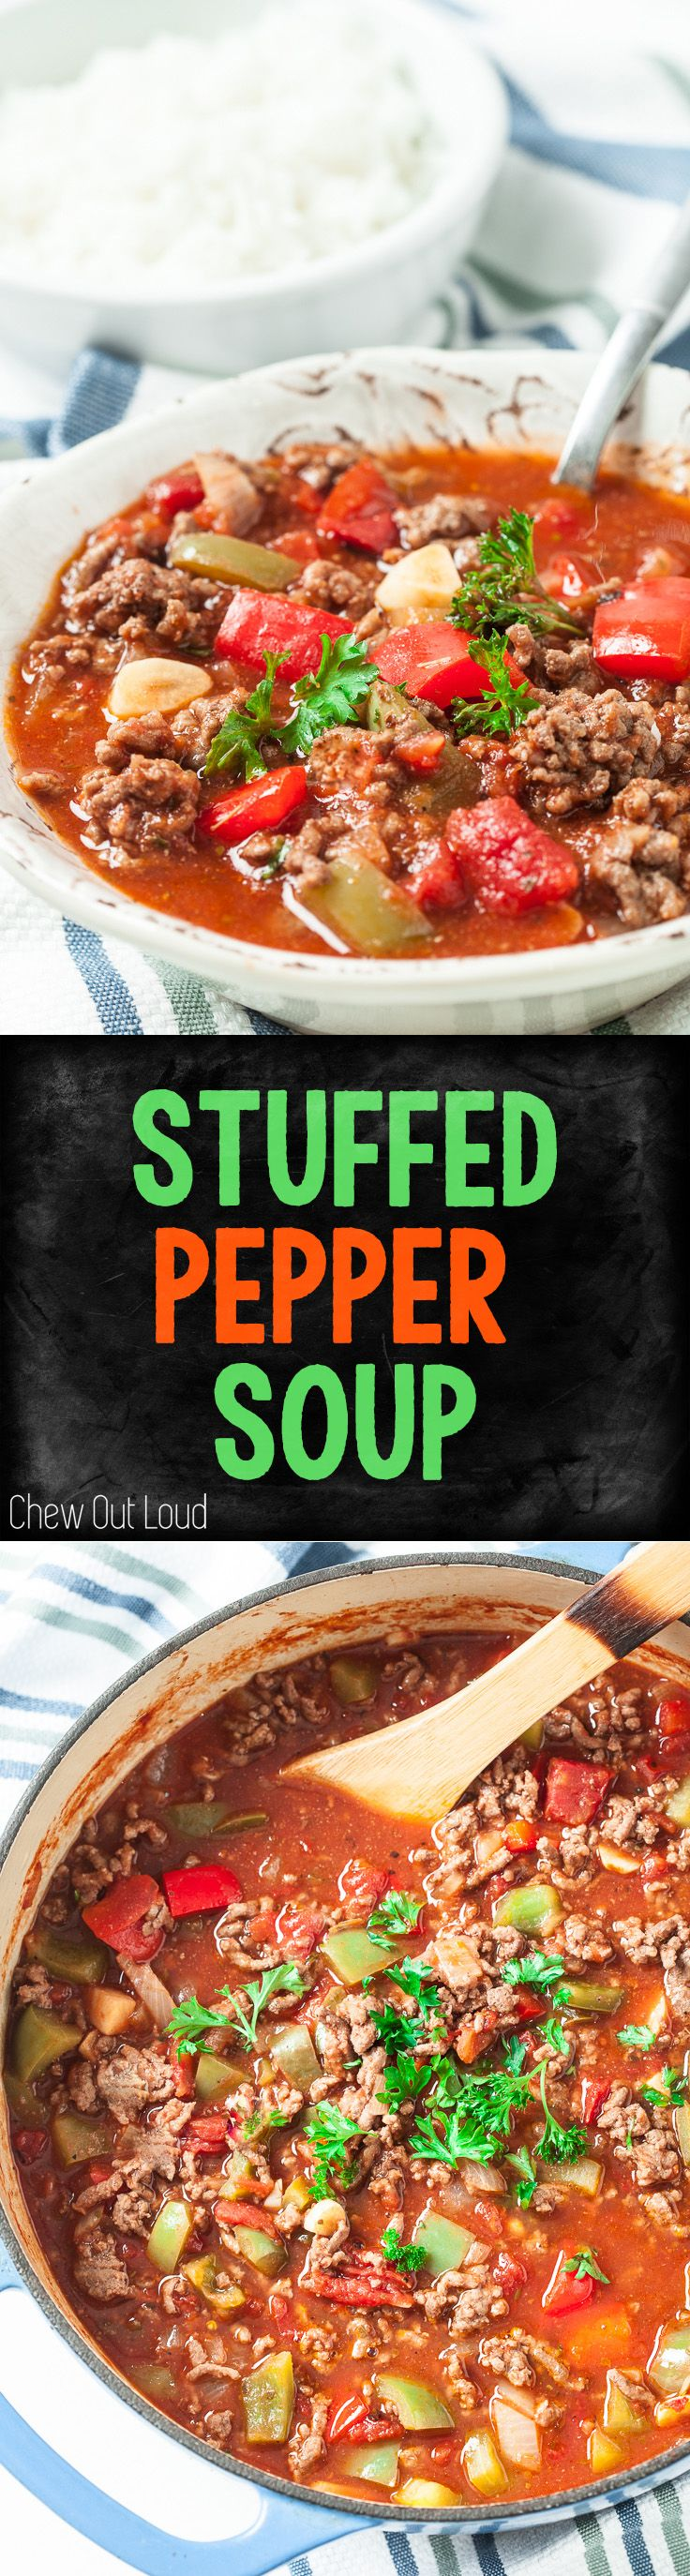 One-Pot Stuffed Pepper Soup. Easy, Healthy, Delicious. ADD Cauliflower rice